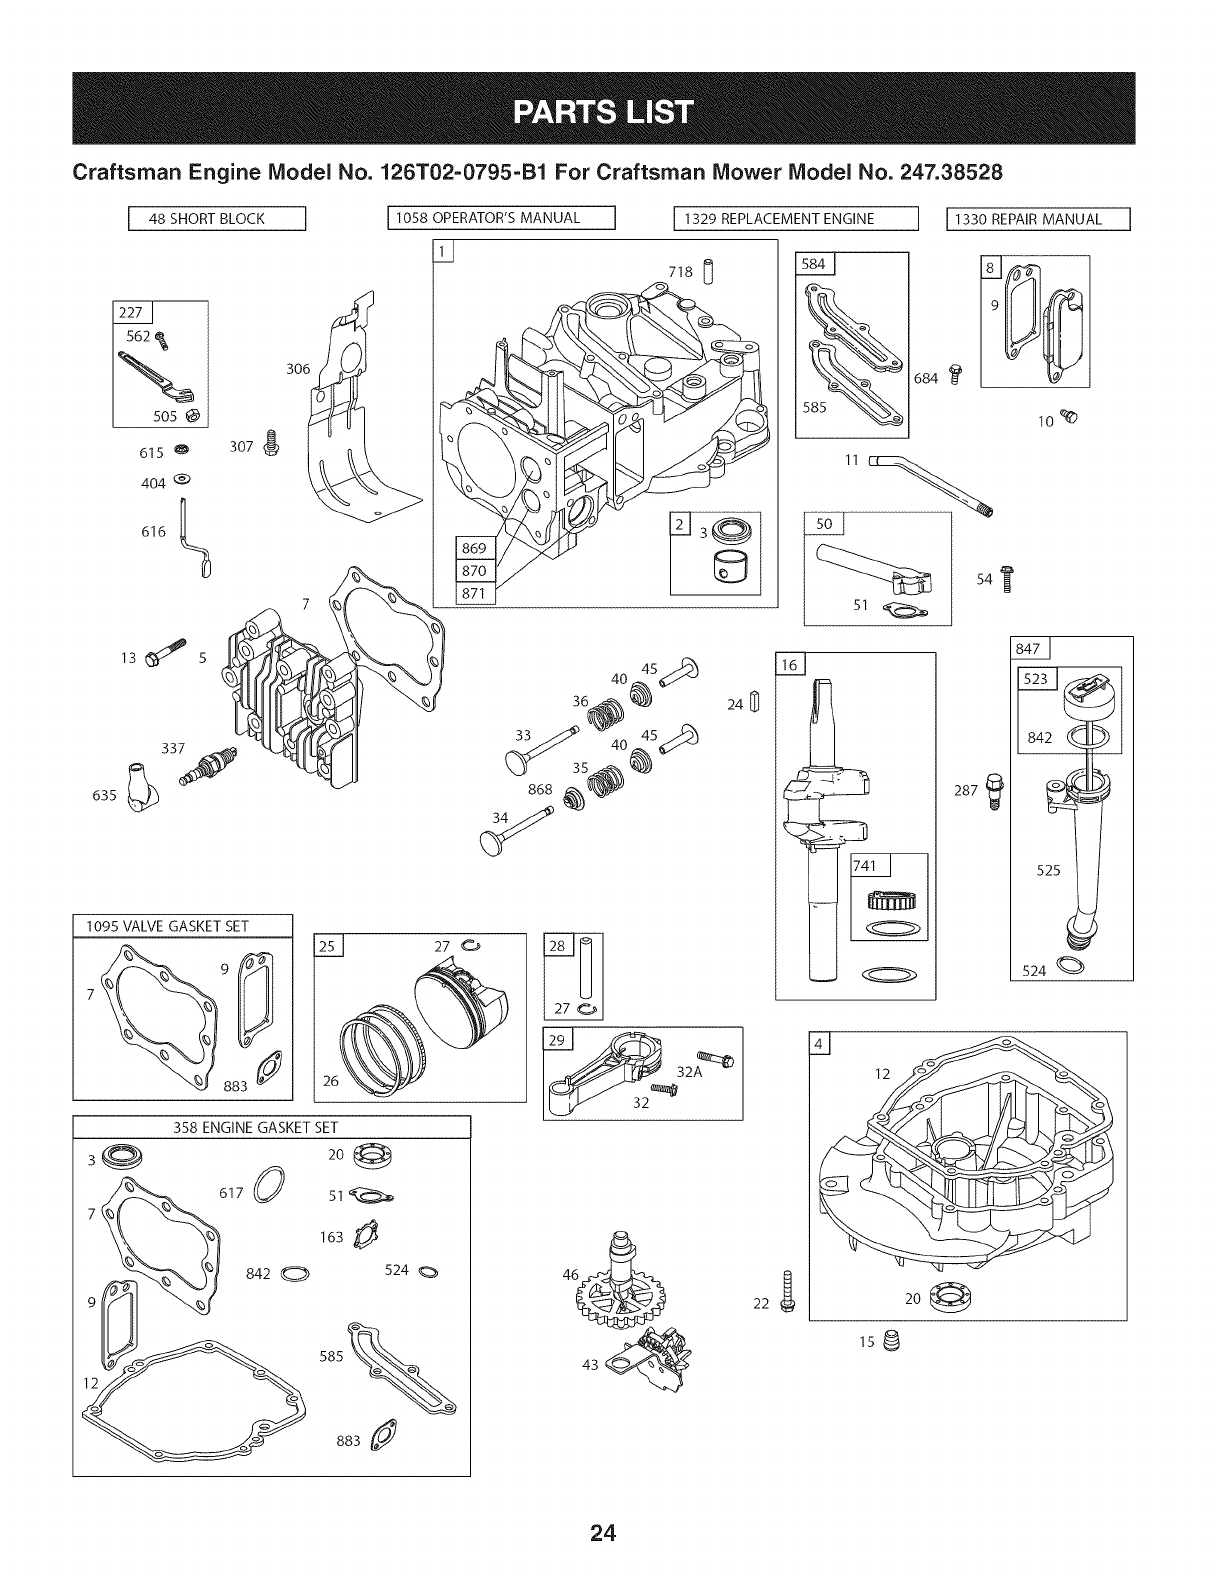 page 24 of craftsman lawn mower 38528 user guide